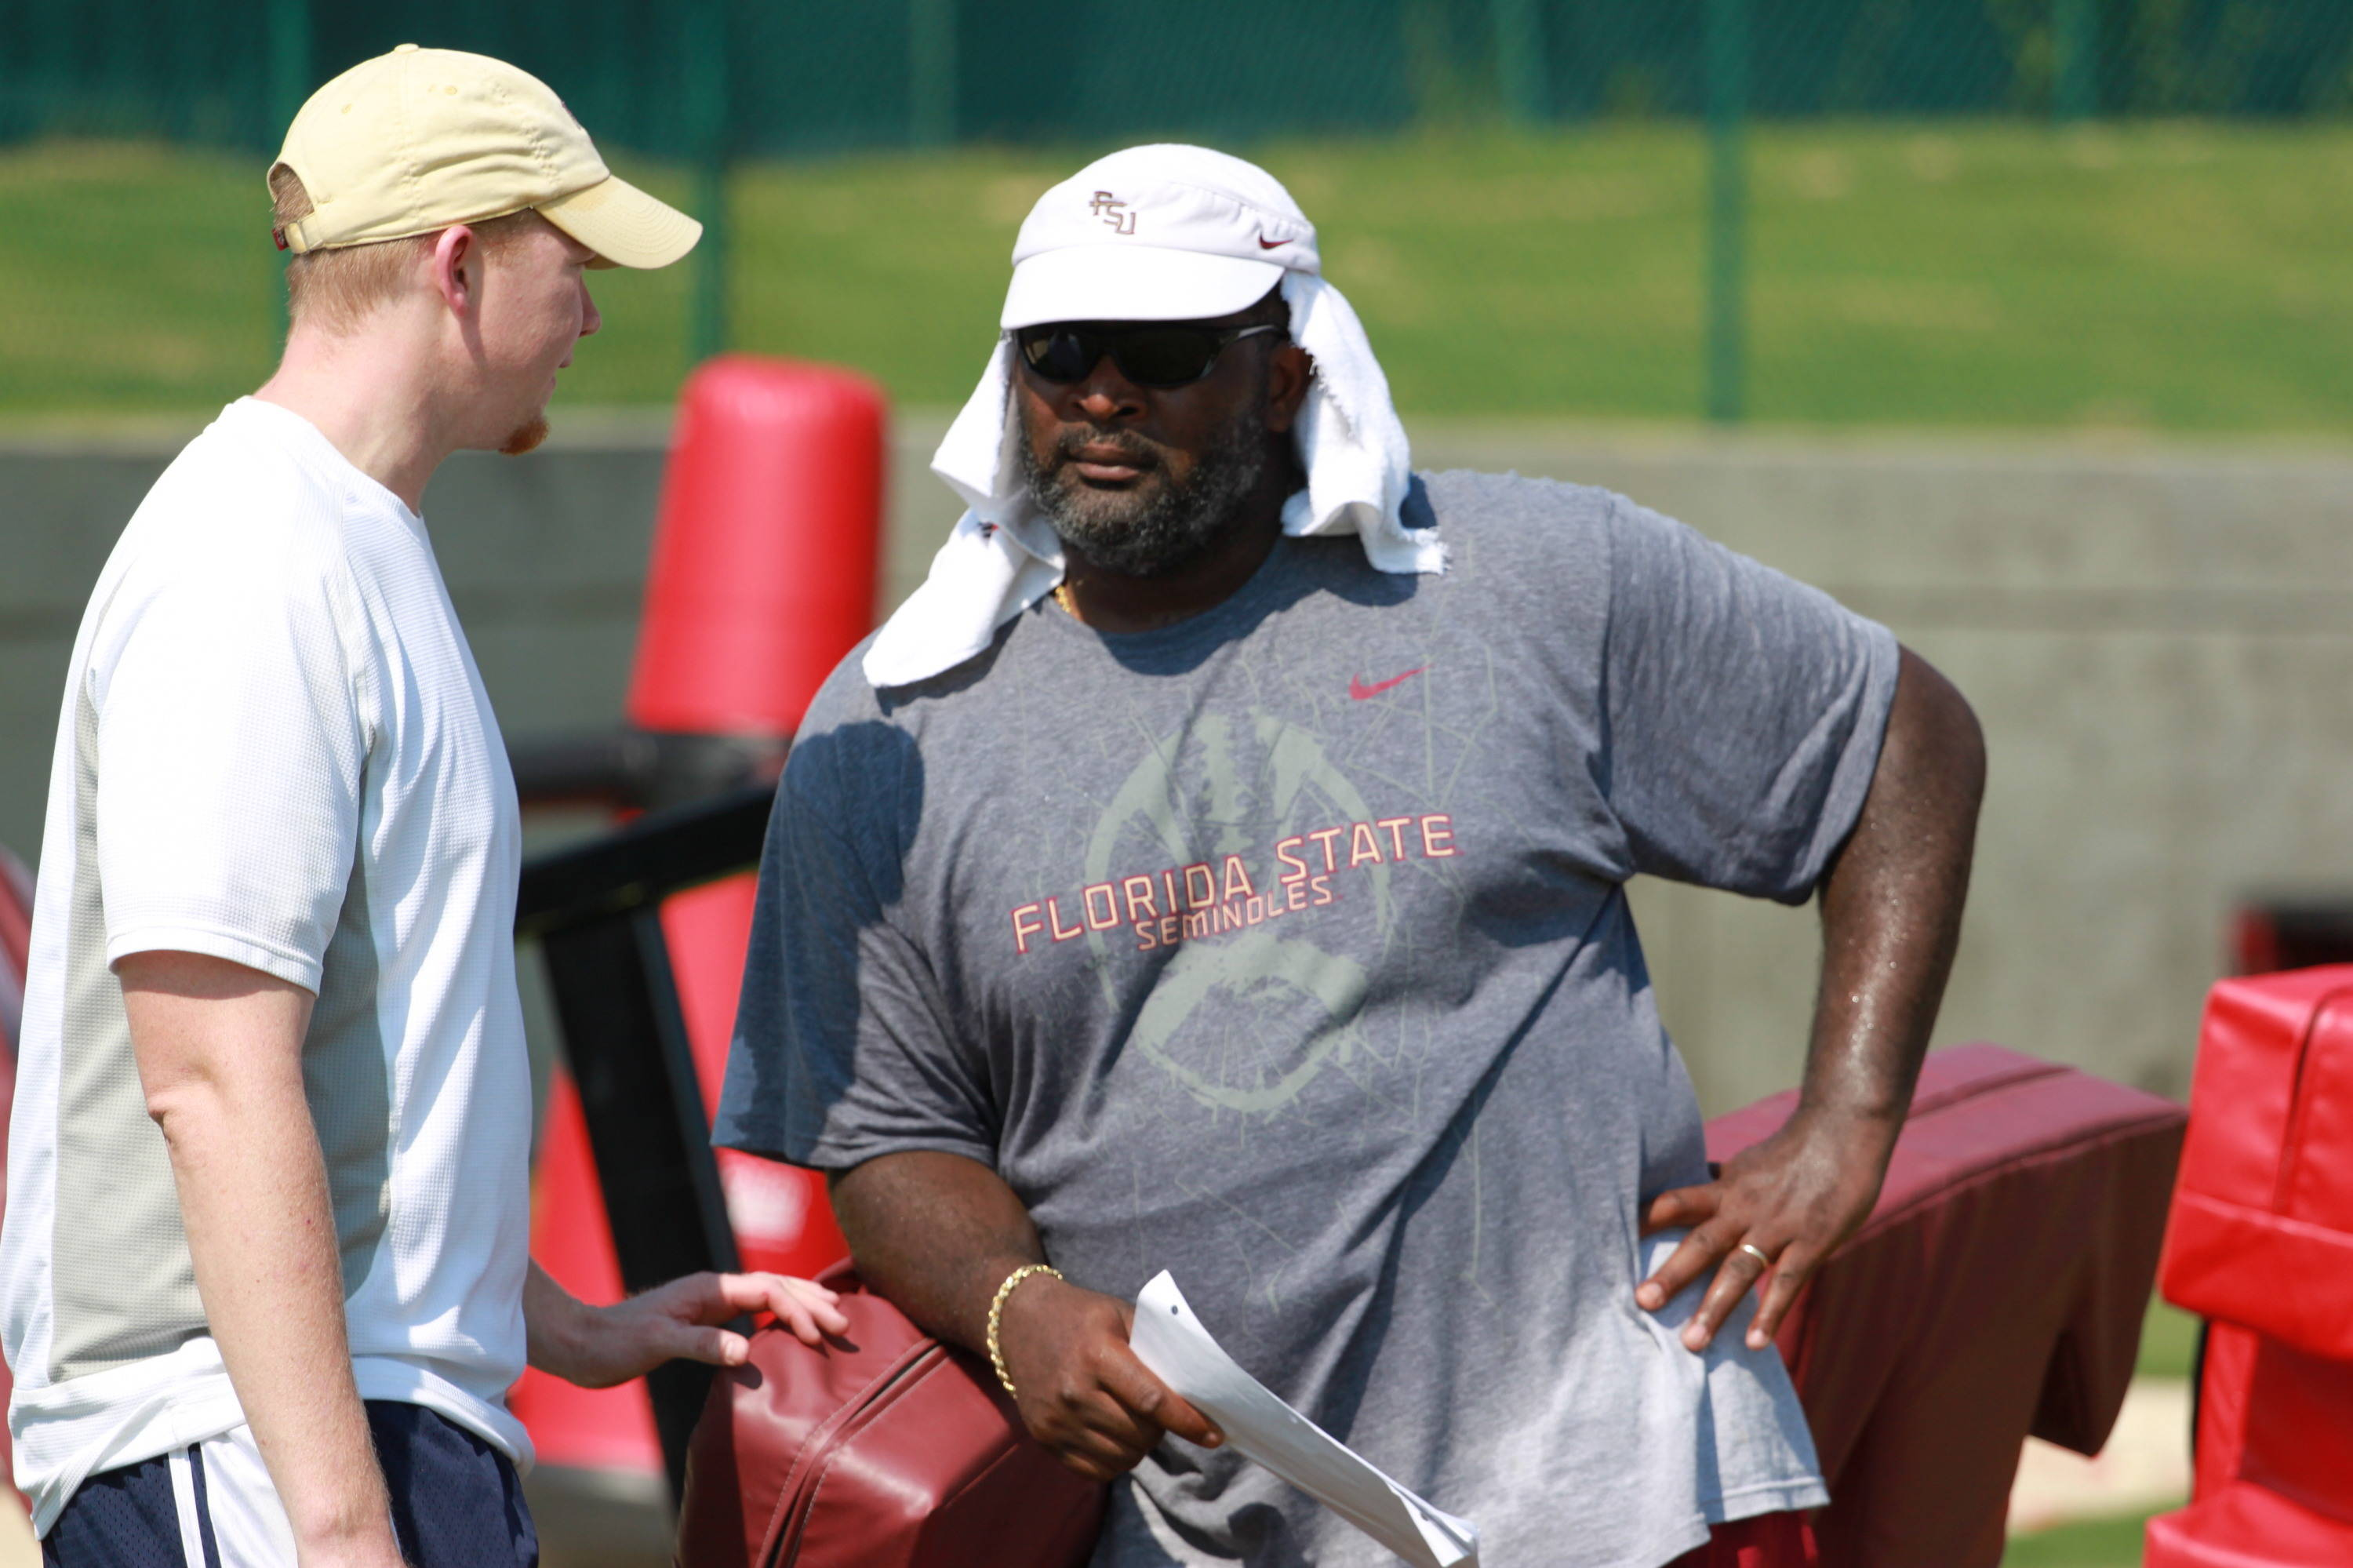 Defensive tackles coach Odell Haggins in his familiar warm weather headgear.